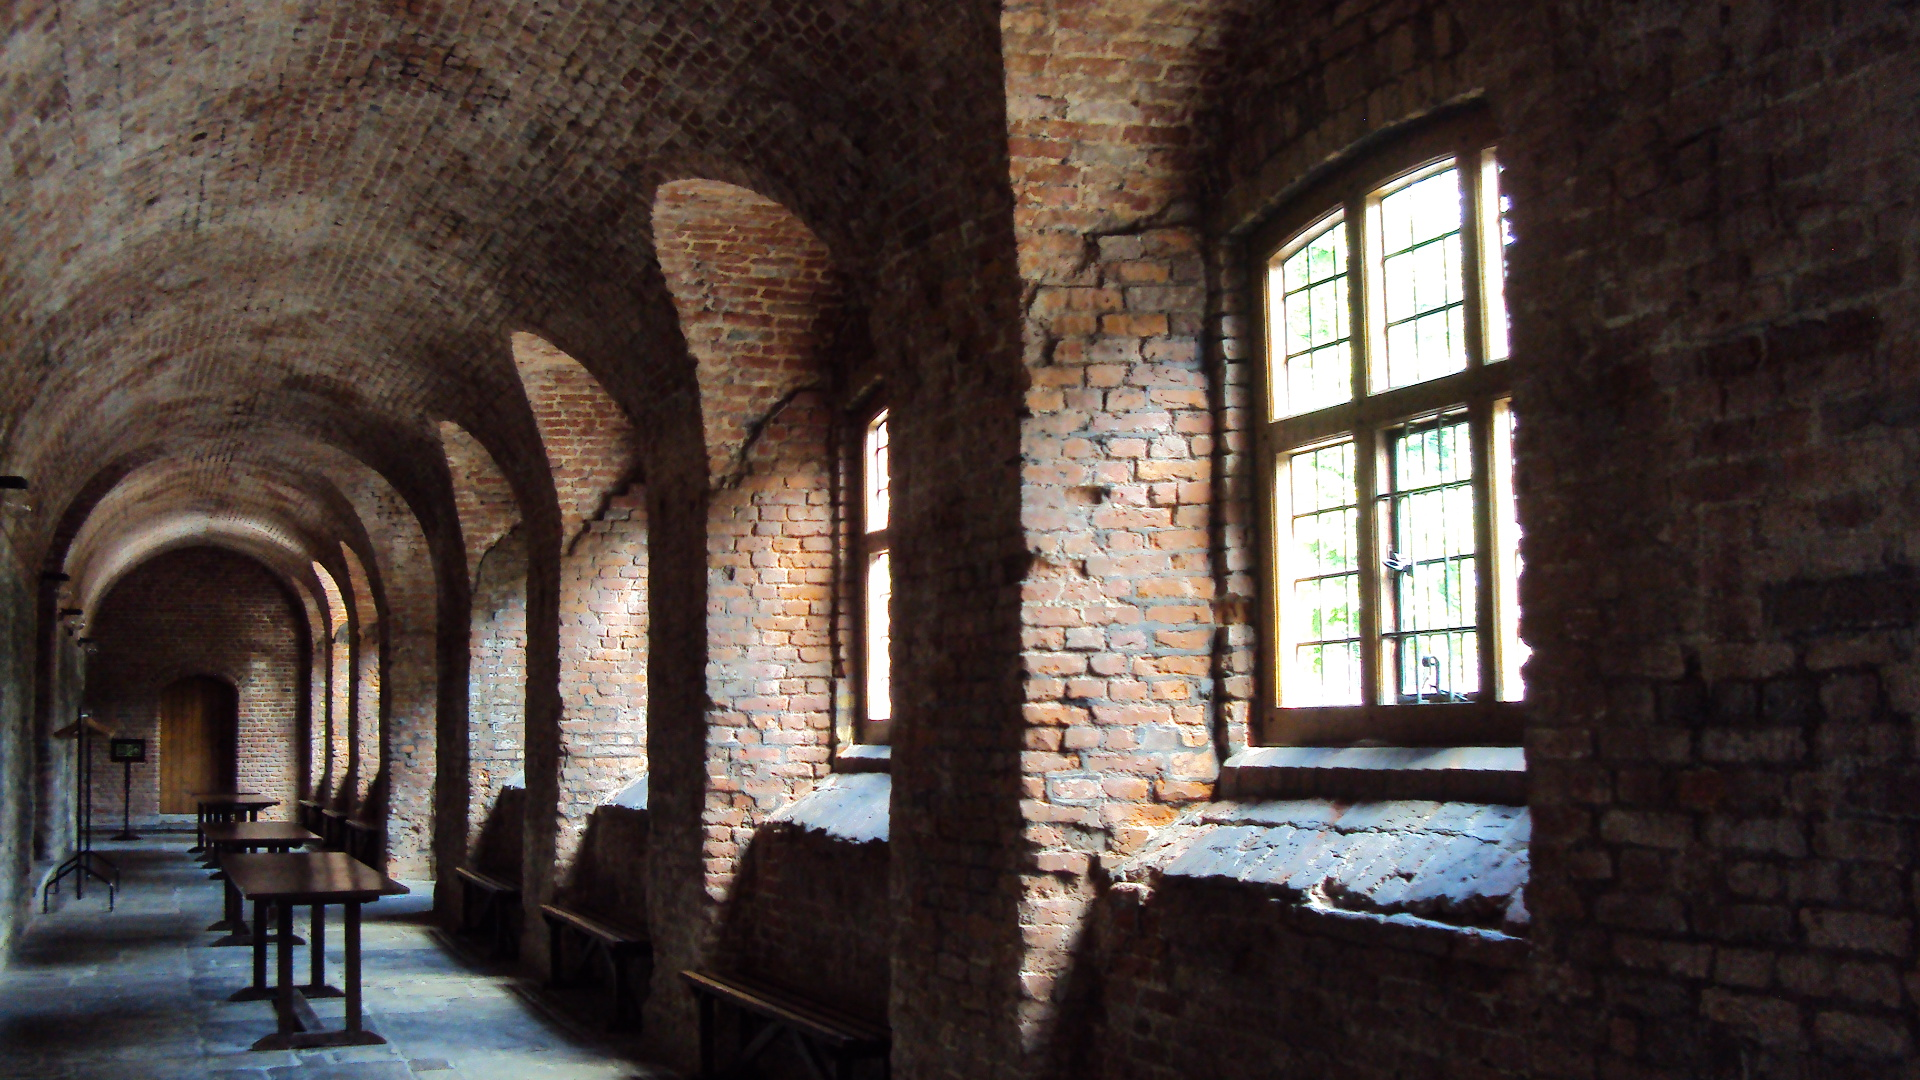 Inside the Charterhouse building in London